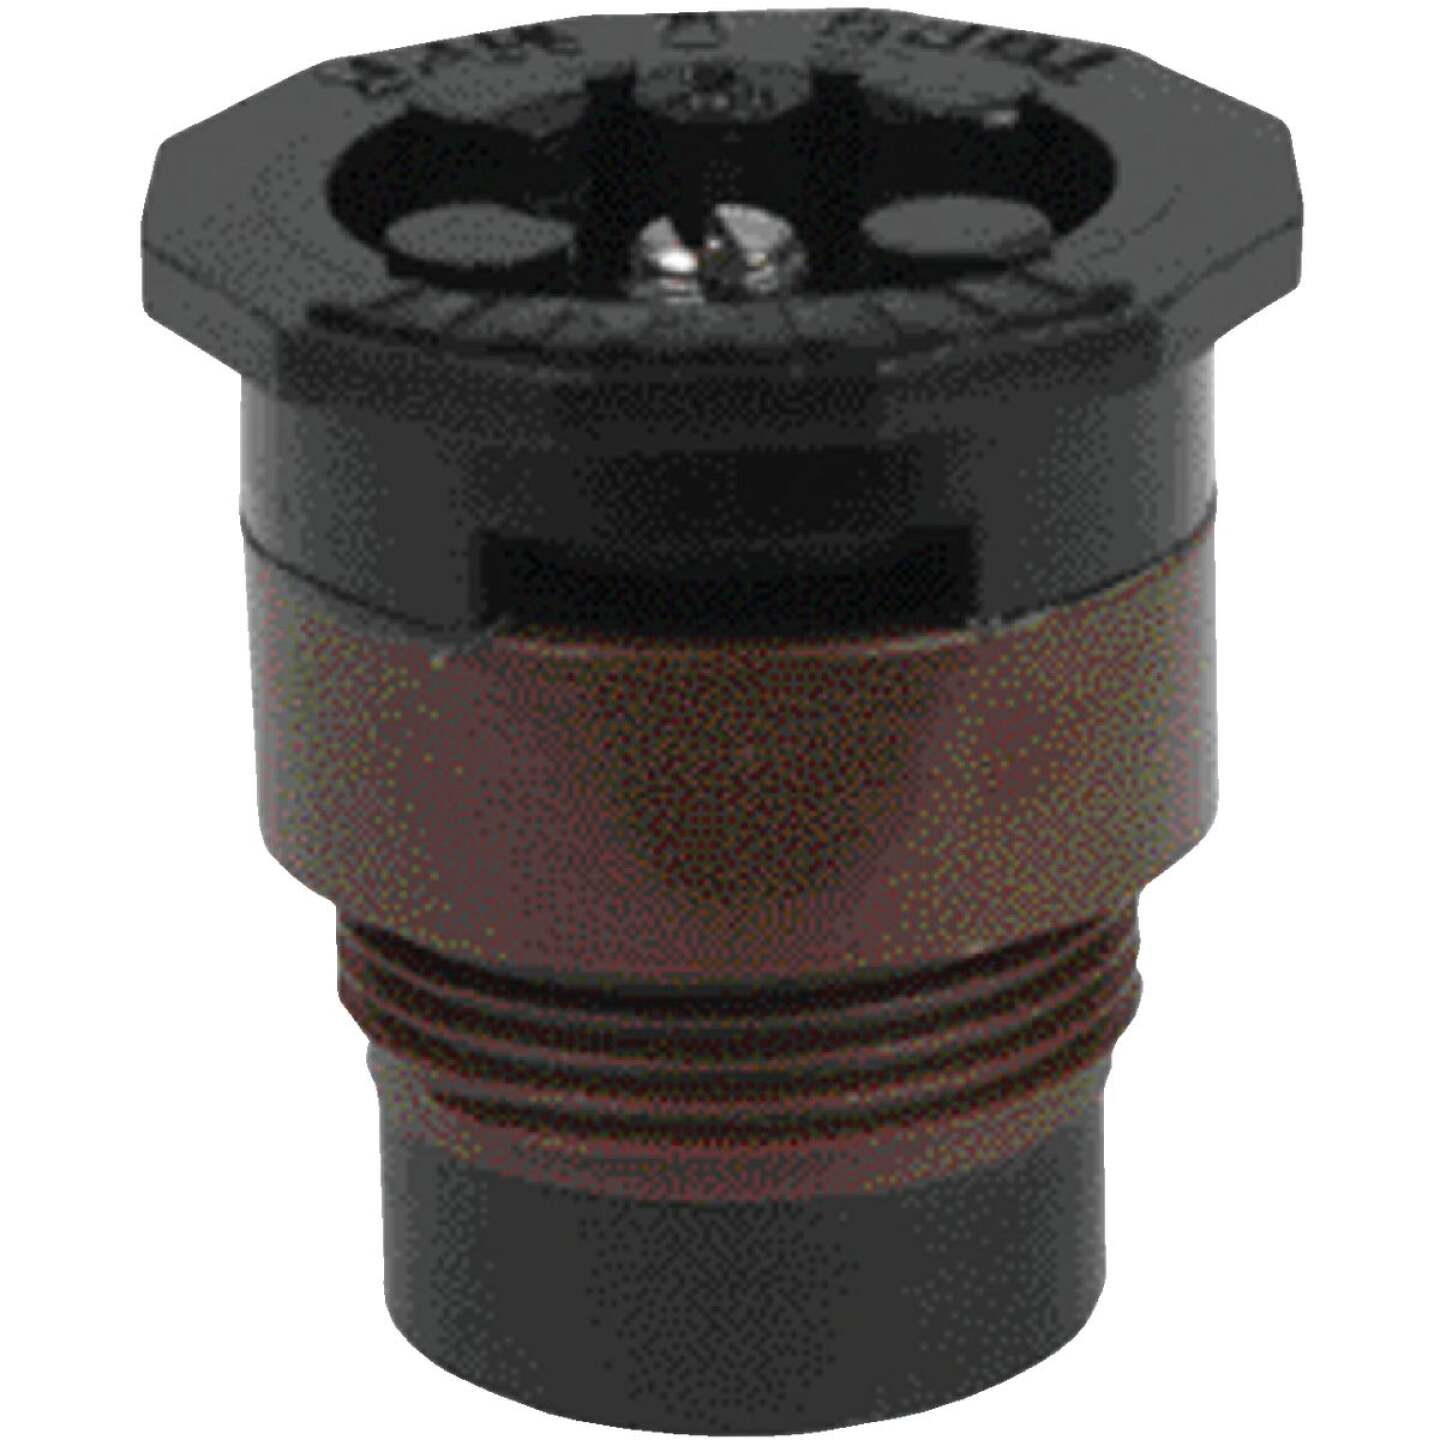 Toro Quarter Circle 12 Ft. Replacement Nozzle Image 1